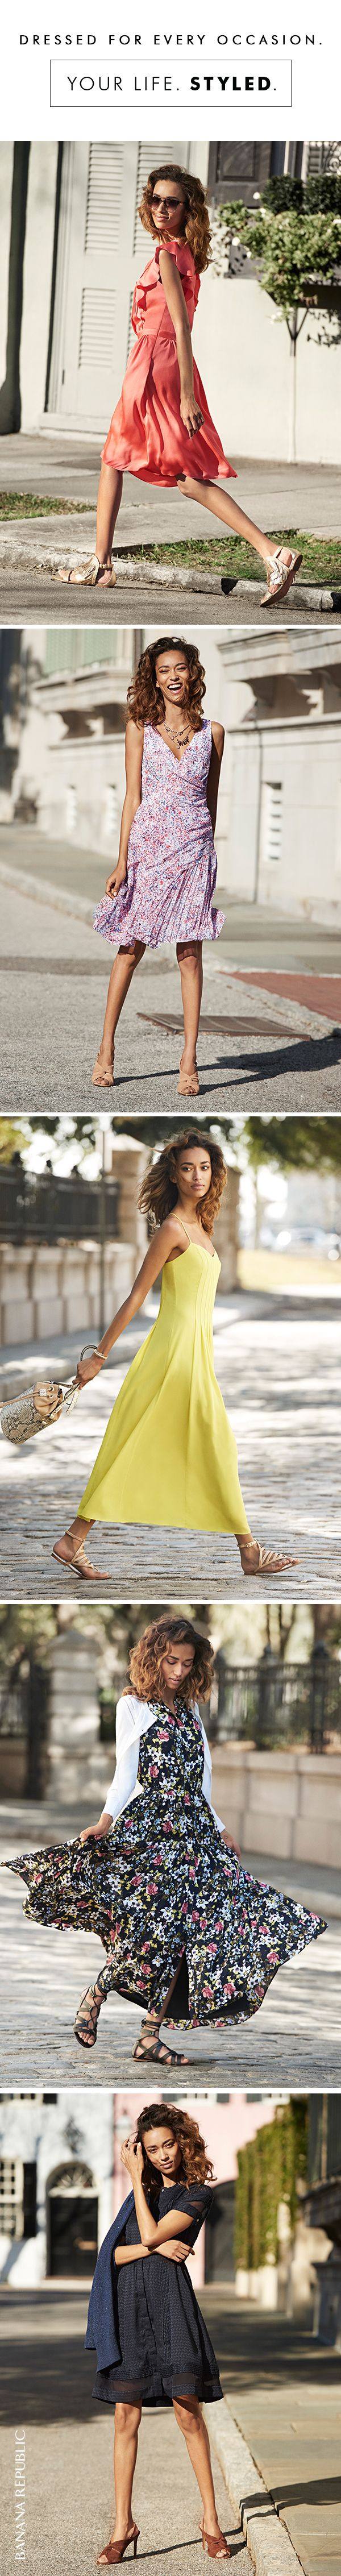 Sometimes a gorgeous, floral, romantic, maxi, colorful, chic, easy dress is all you need. For work, weekend, festivals and getaways Banana Republic is your destination for all things dressy. So many ways to make summer easier, prettier, dressier.